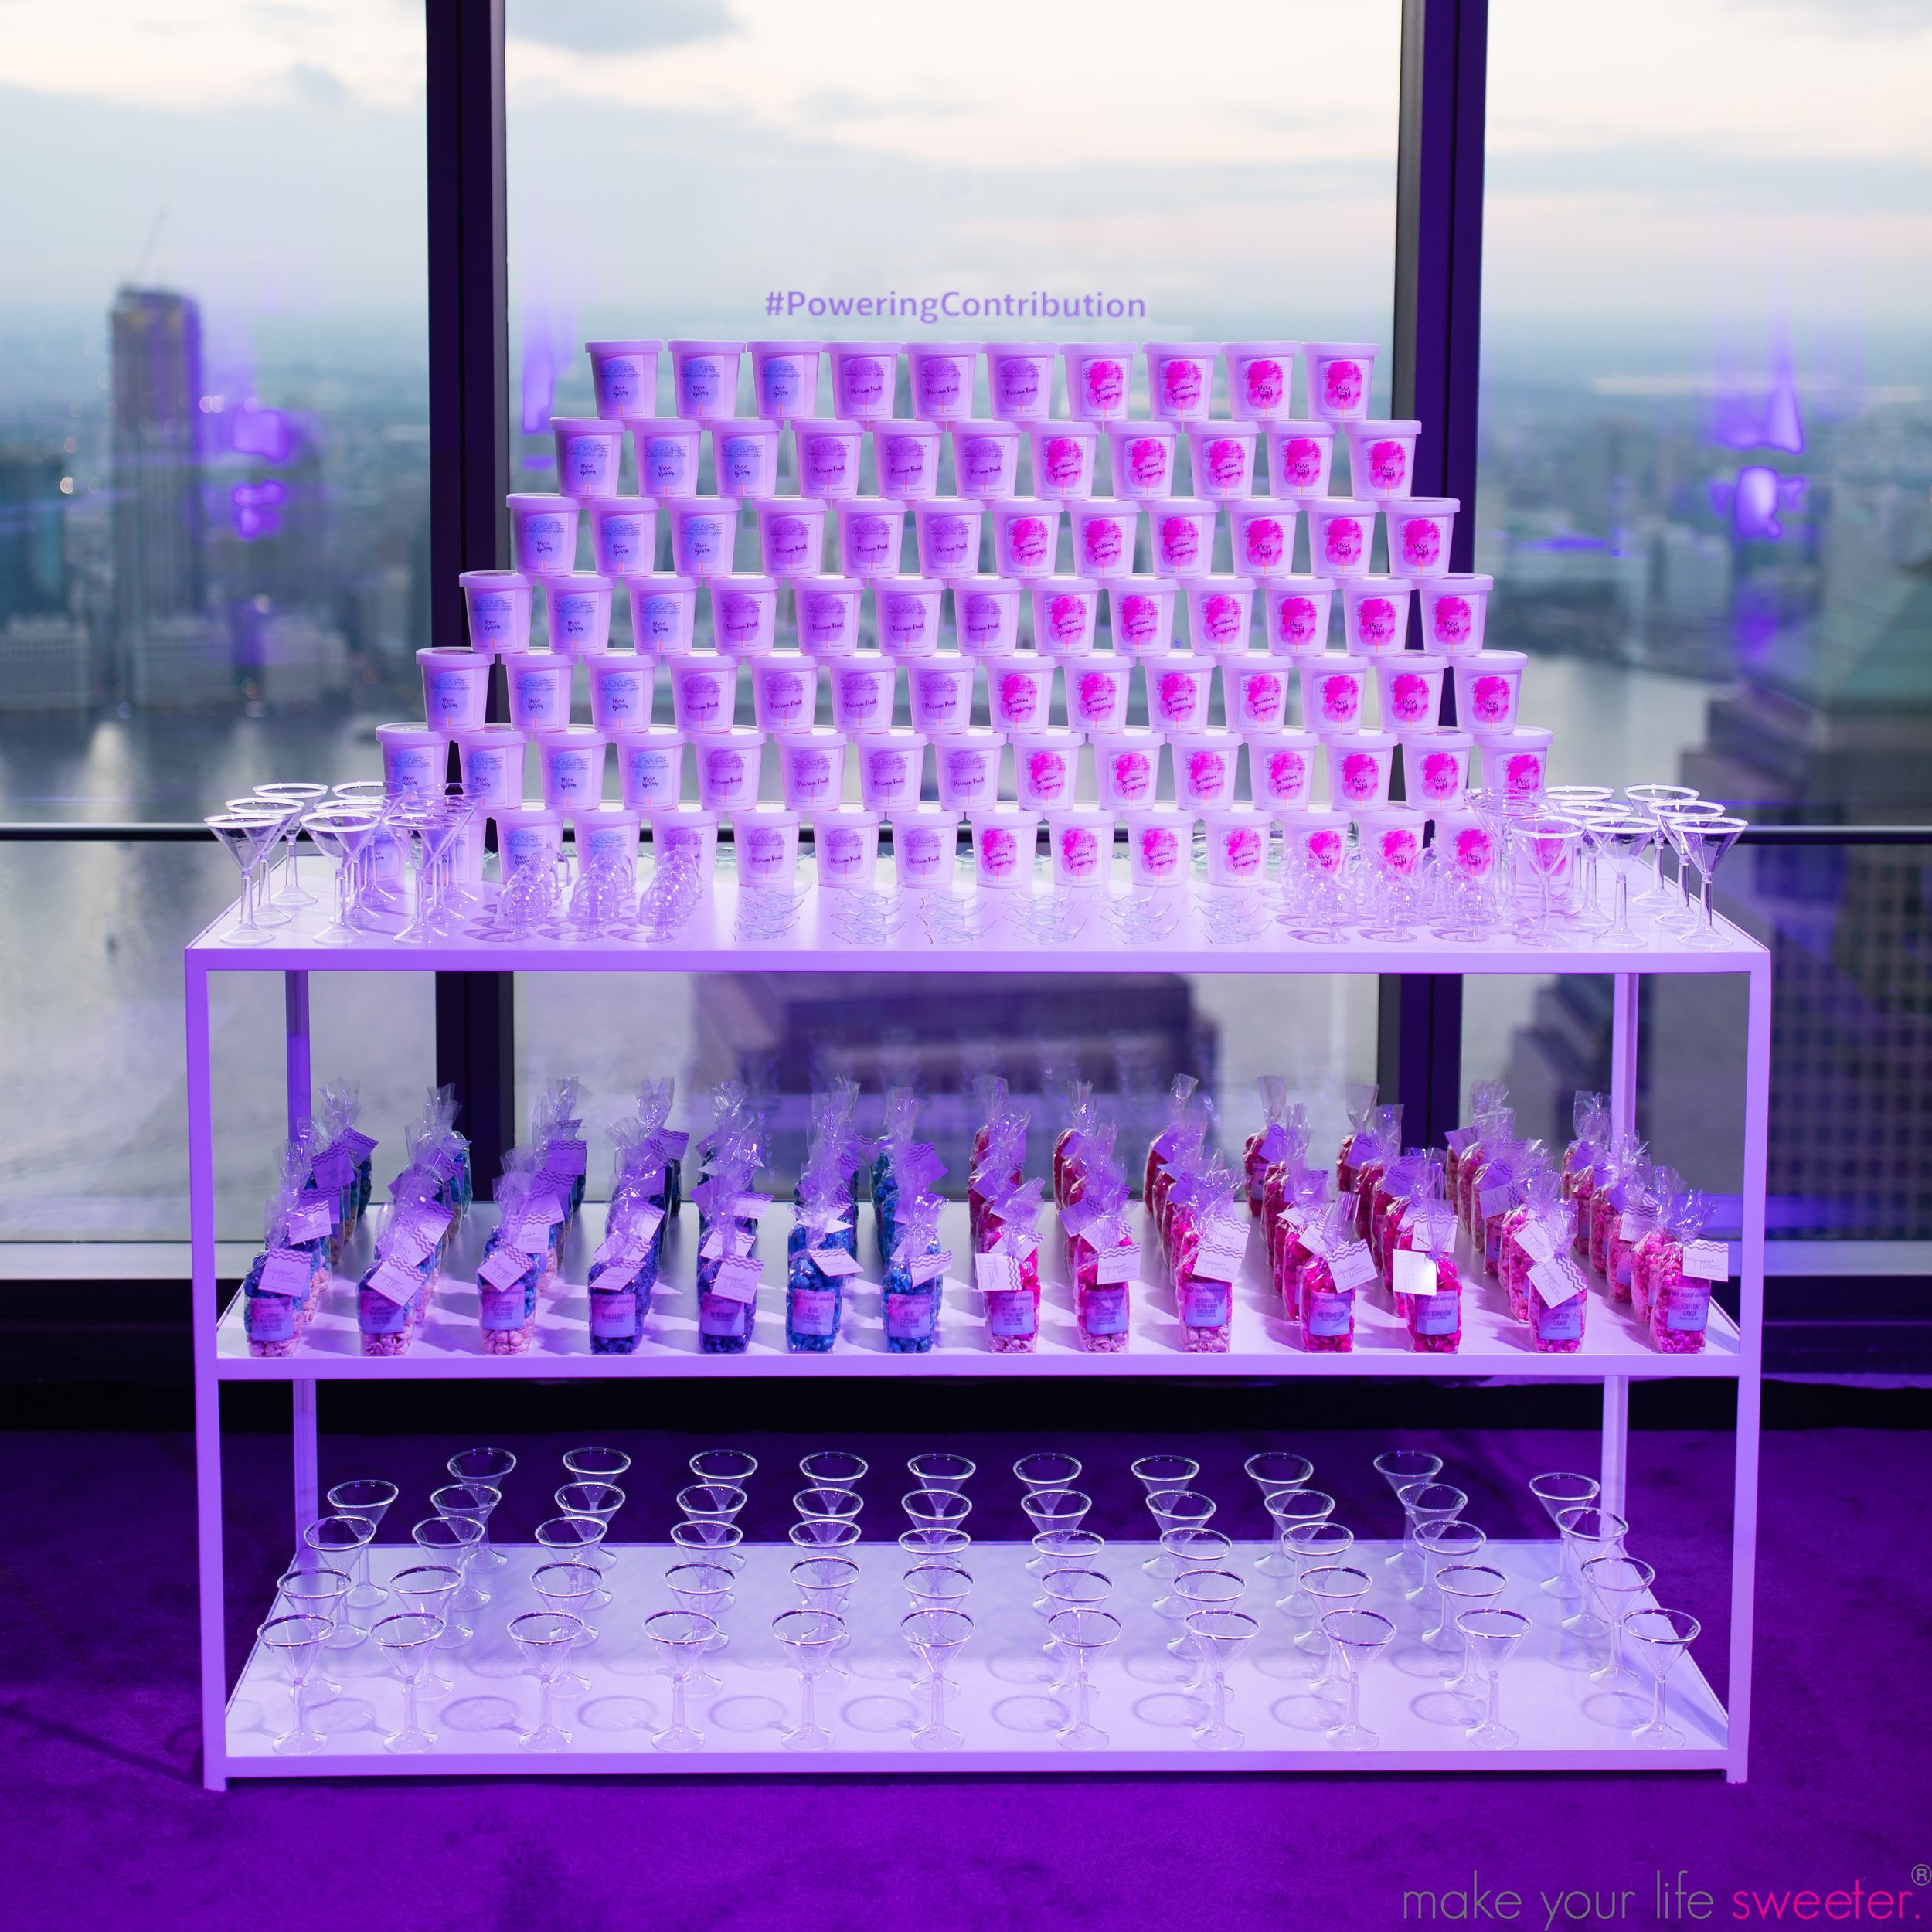 Make Your Life Sweeter Events - Intel Influencer Launch Party